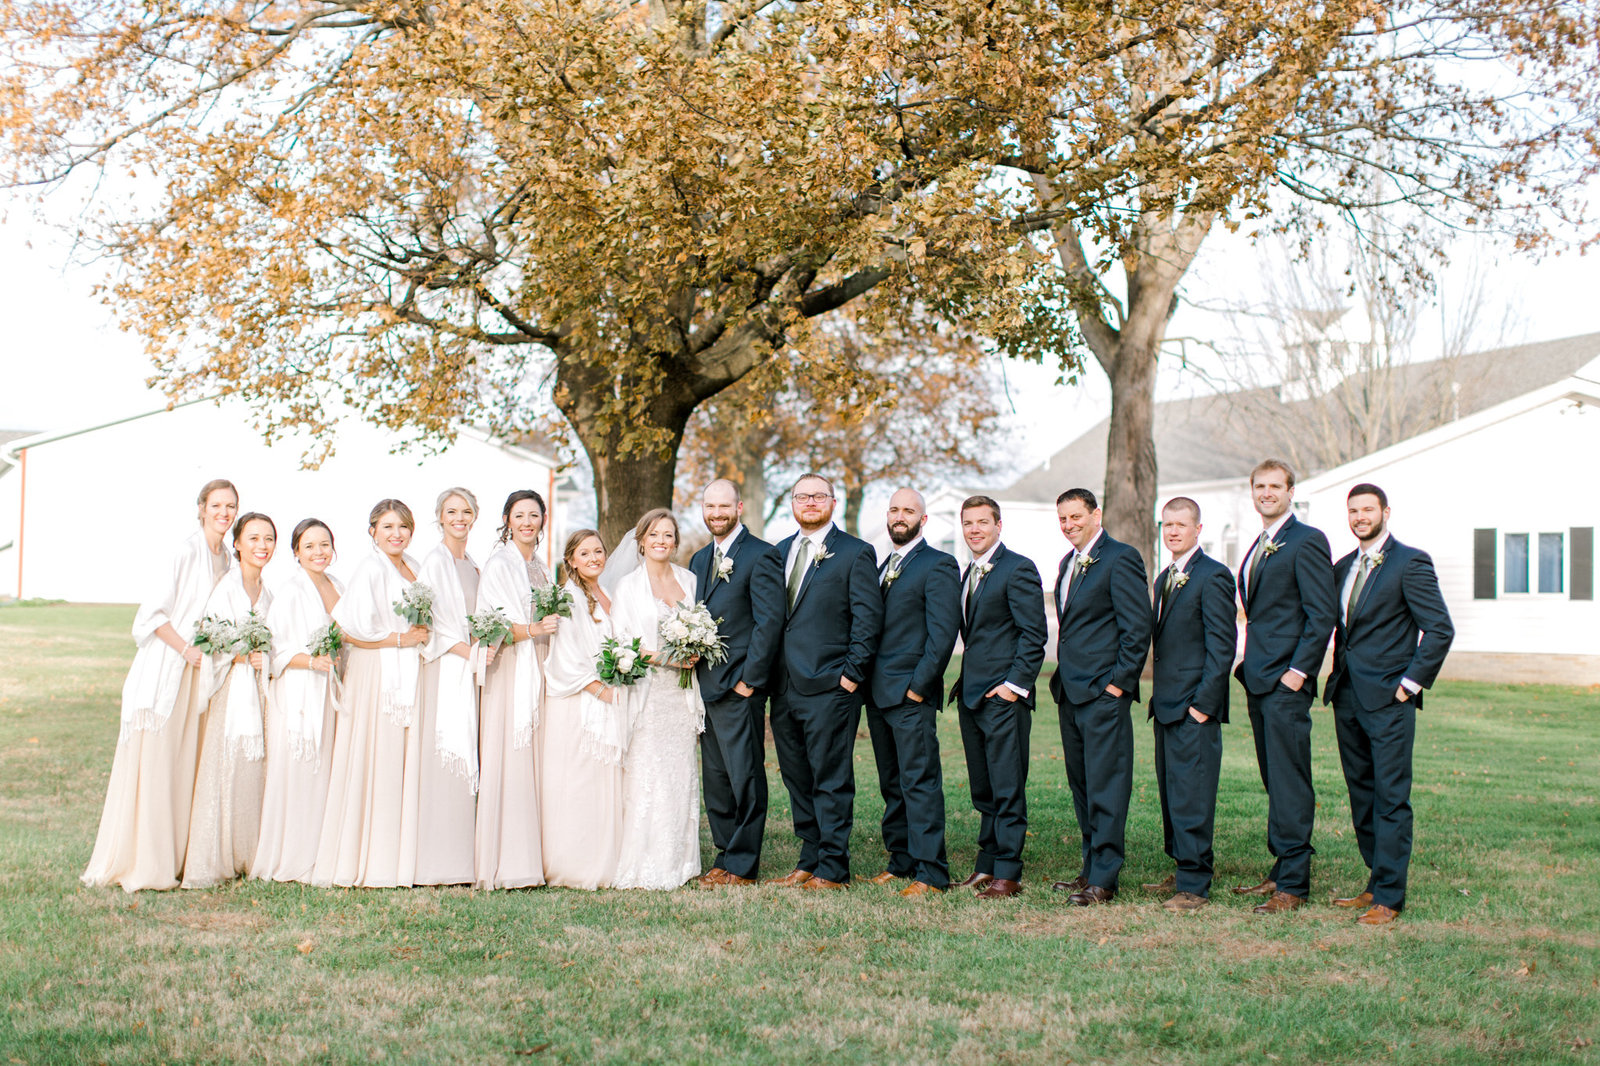 cleveland wedding photographers Austin and rachel -7253